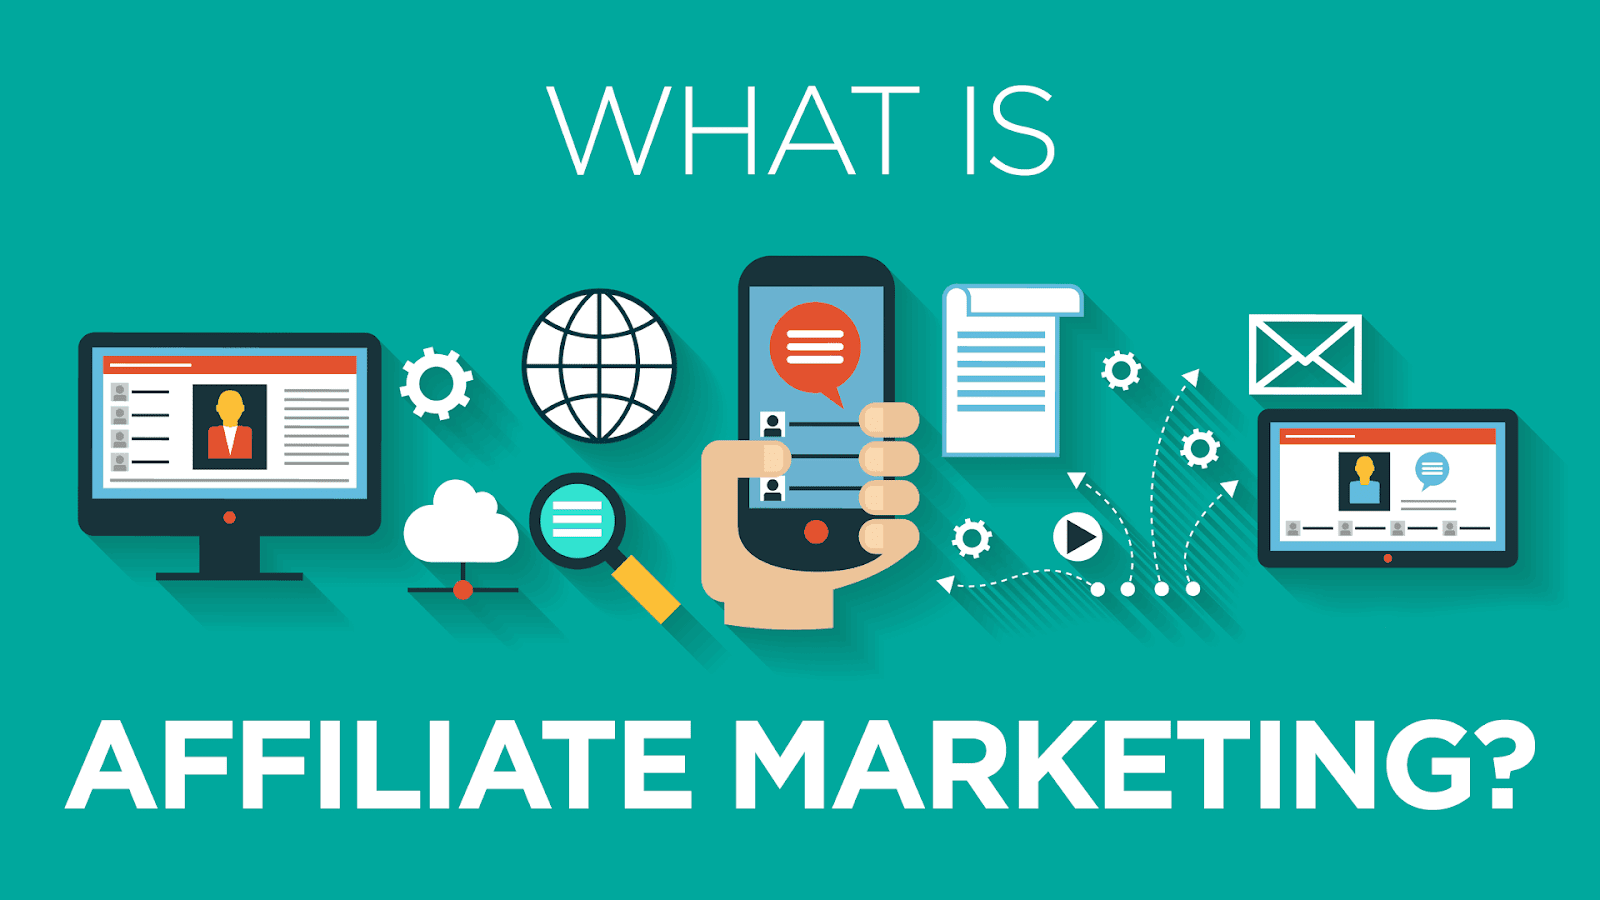 C:\Users\Stefan\Downloads\1564905038-2075-what-is-affiliate-marketing.png